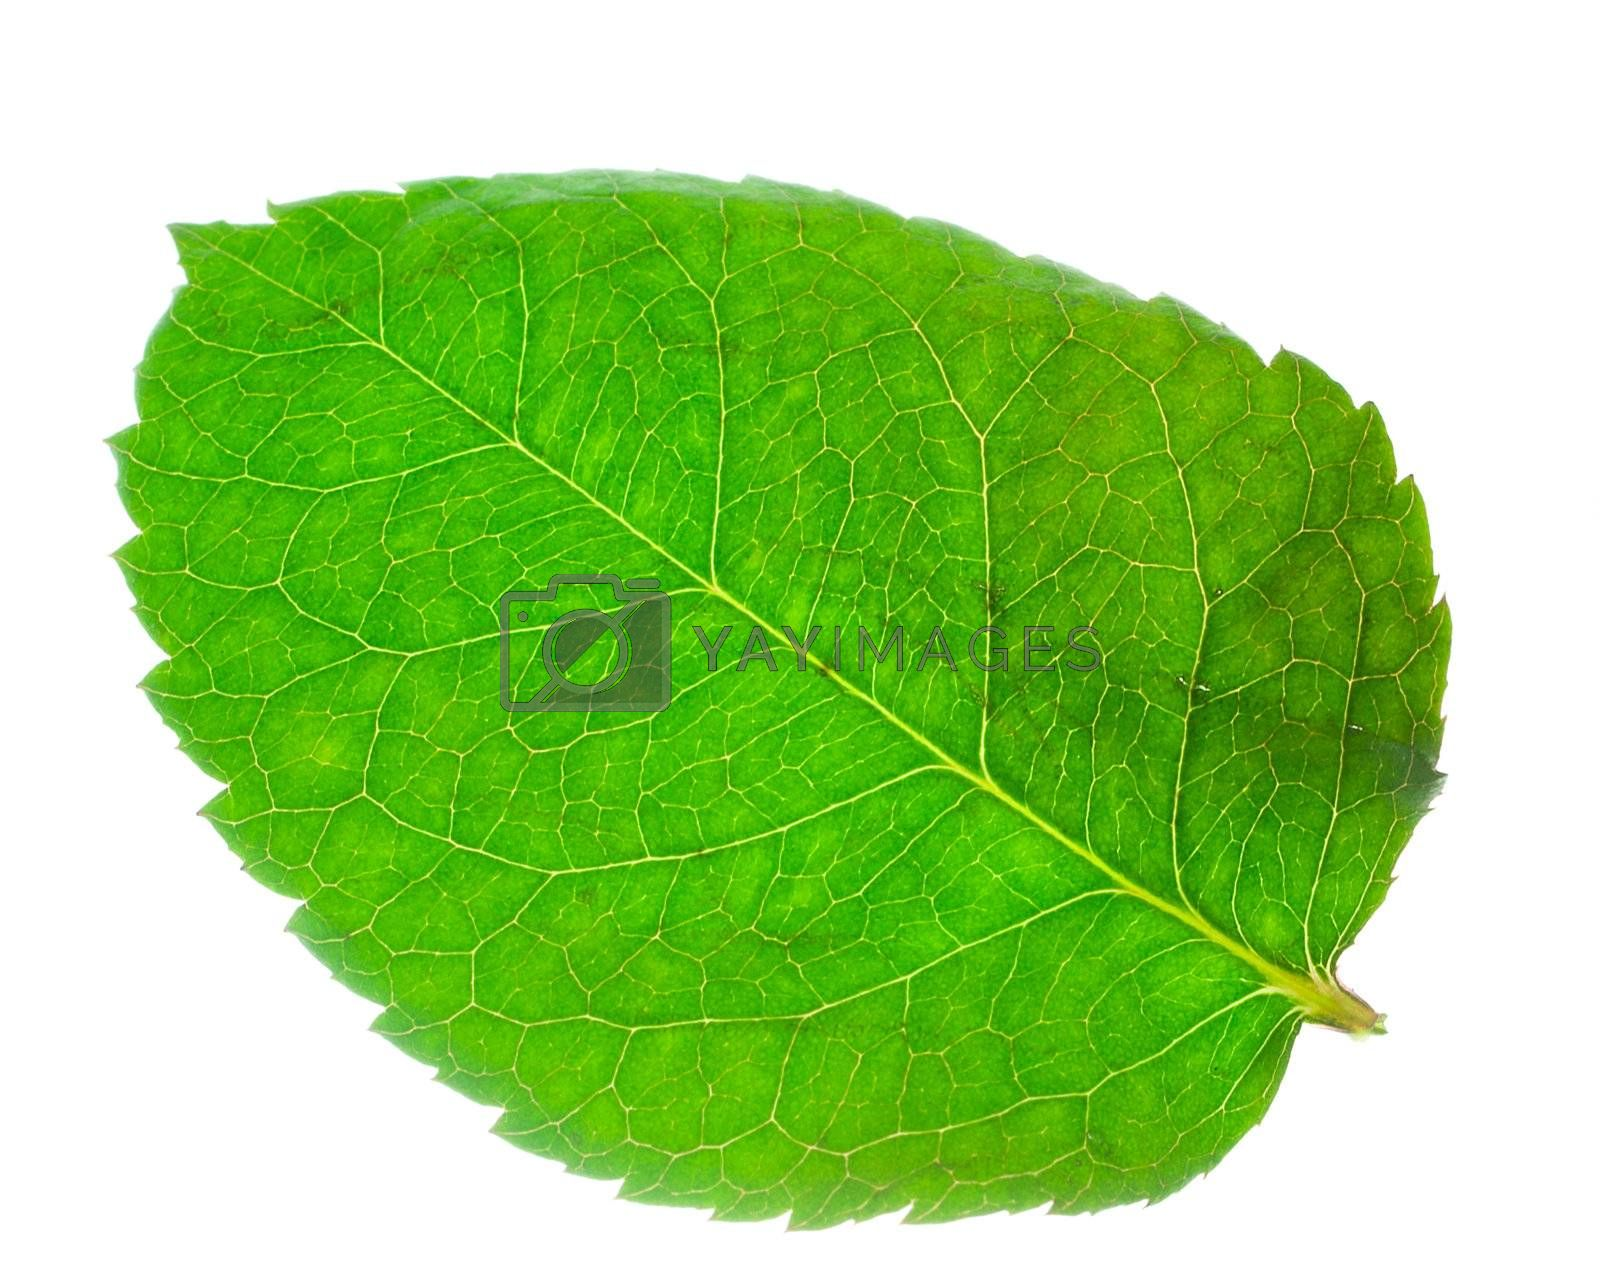 close-up green leaf from rose, isolated on white